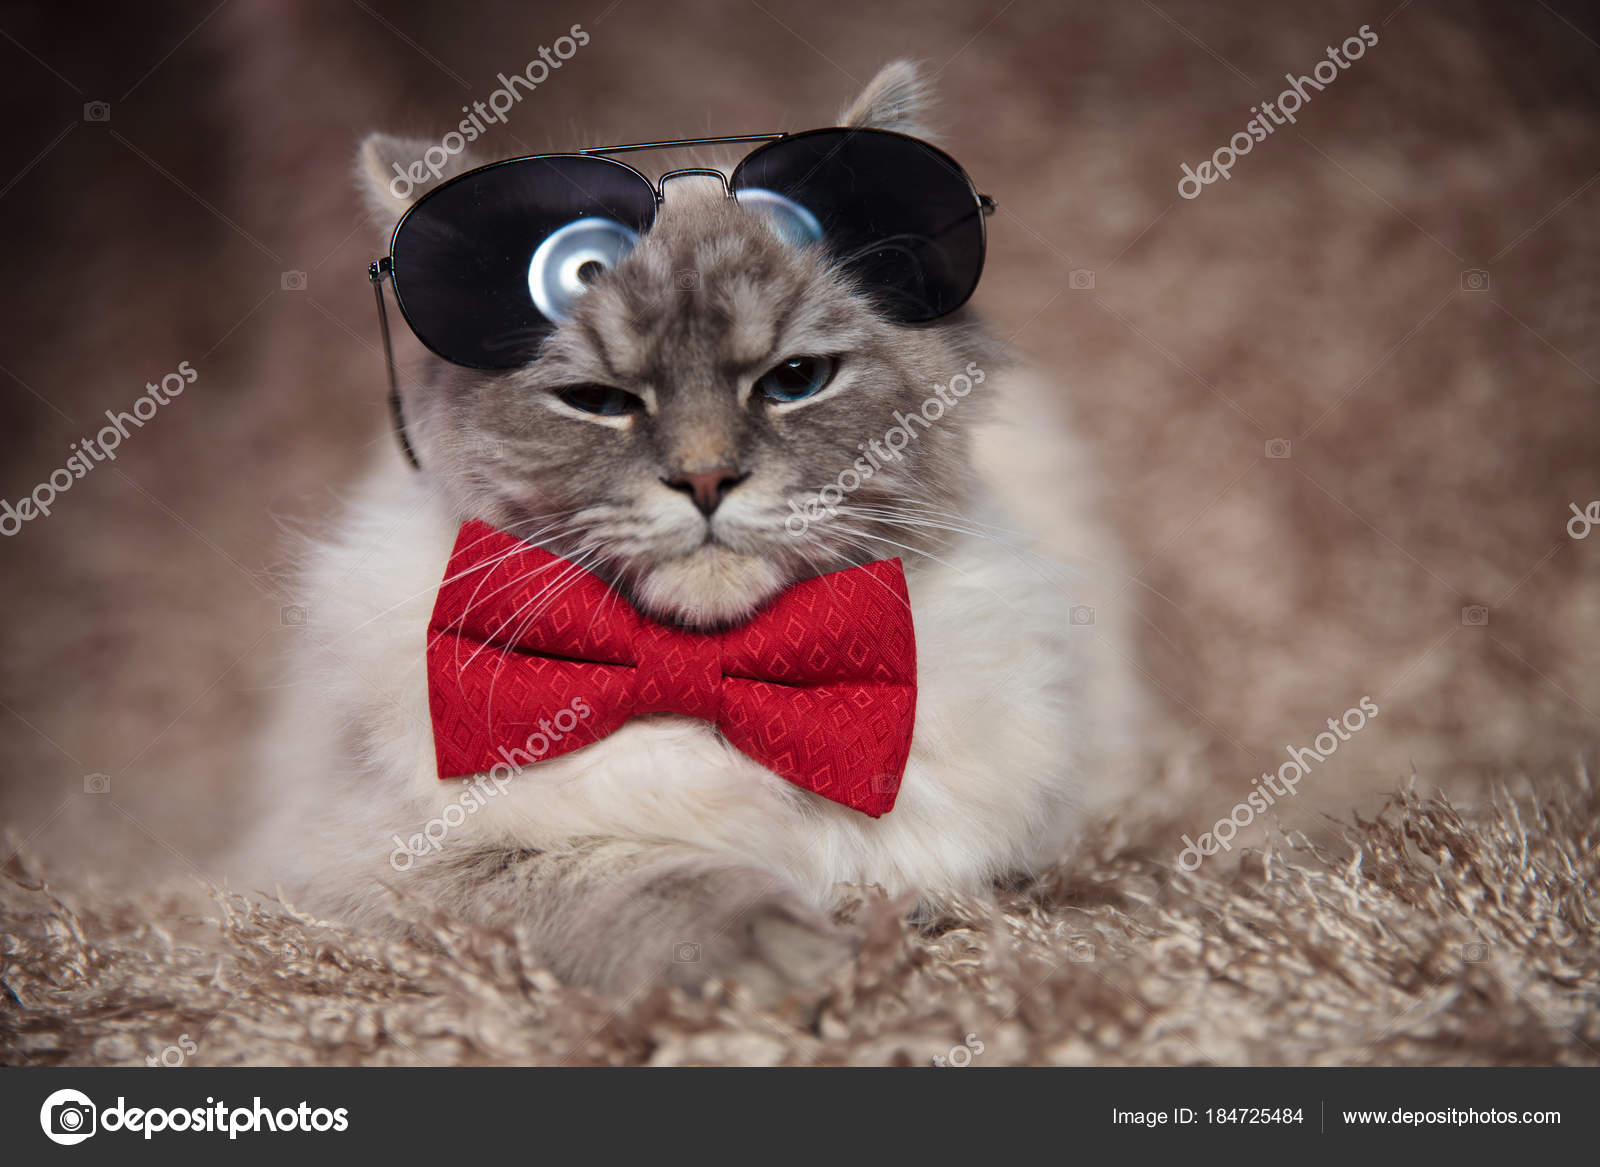 d4749b128f Cool modern cat wearing bowtie and sunglasses is lying down on furry  background — Photo by feedough